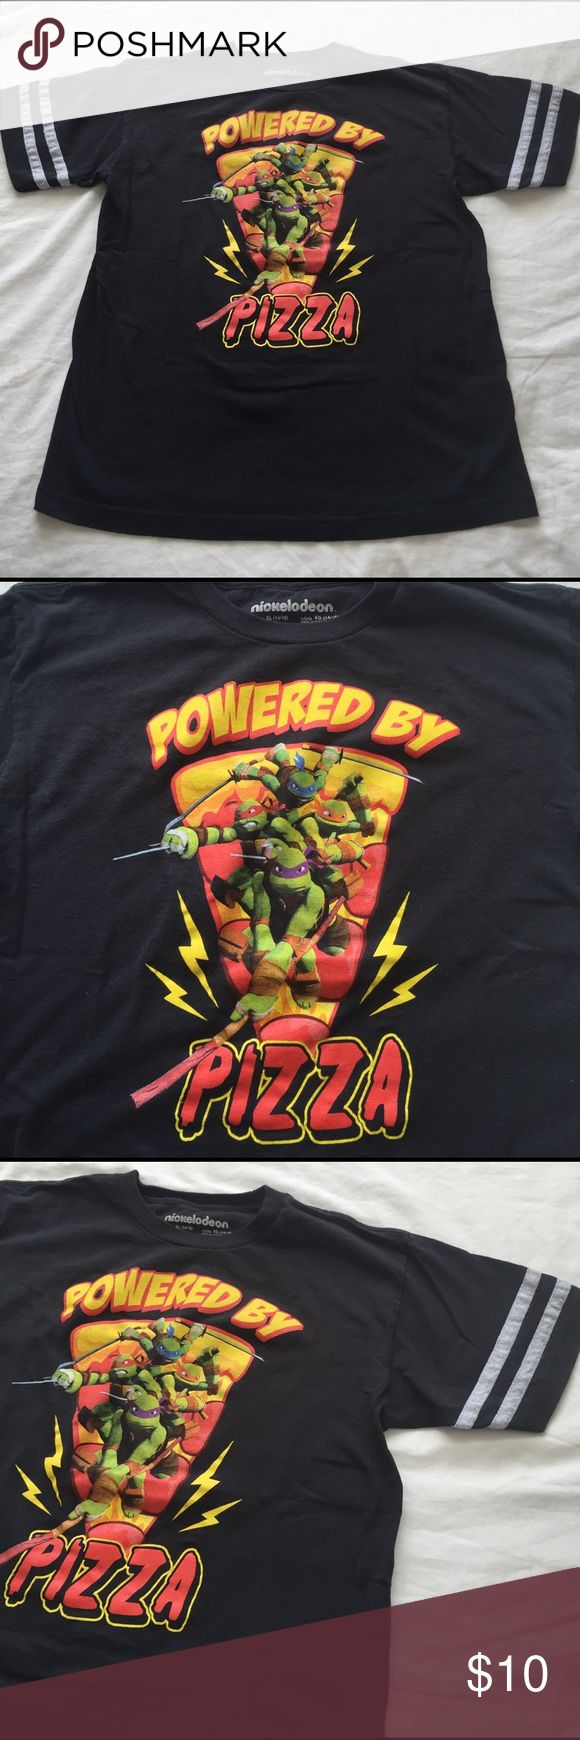 🍕TMNT POWERED BY PIZZA T-Shirt🍕 Throwback Teenage Mutant Ninja Turtles Pizza tee. Youth size XL but fits women S/M. Because who doesn't like PIZZA?! 🍕🍕🍕🍕 Nickelodeon Tops Tees - Short Sleeve